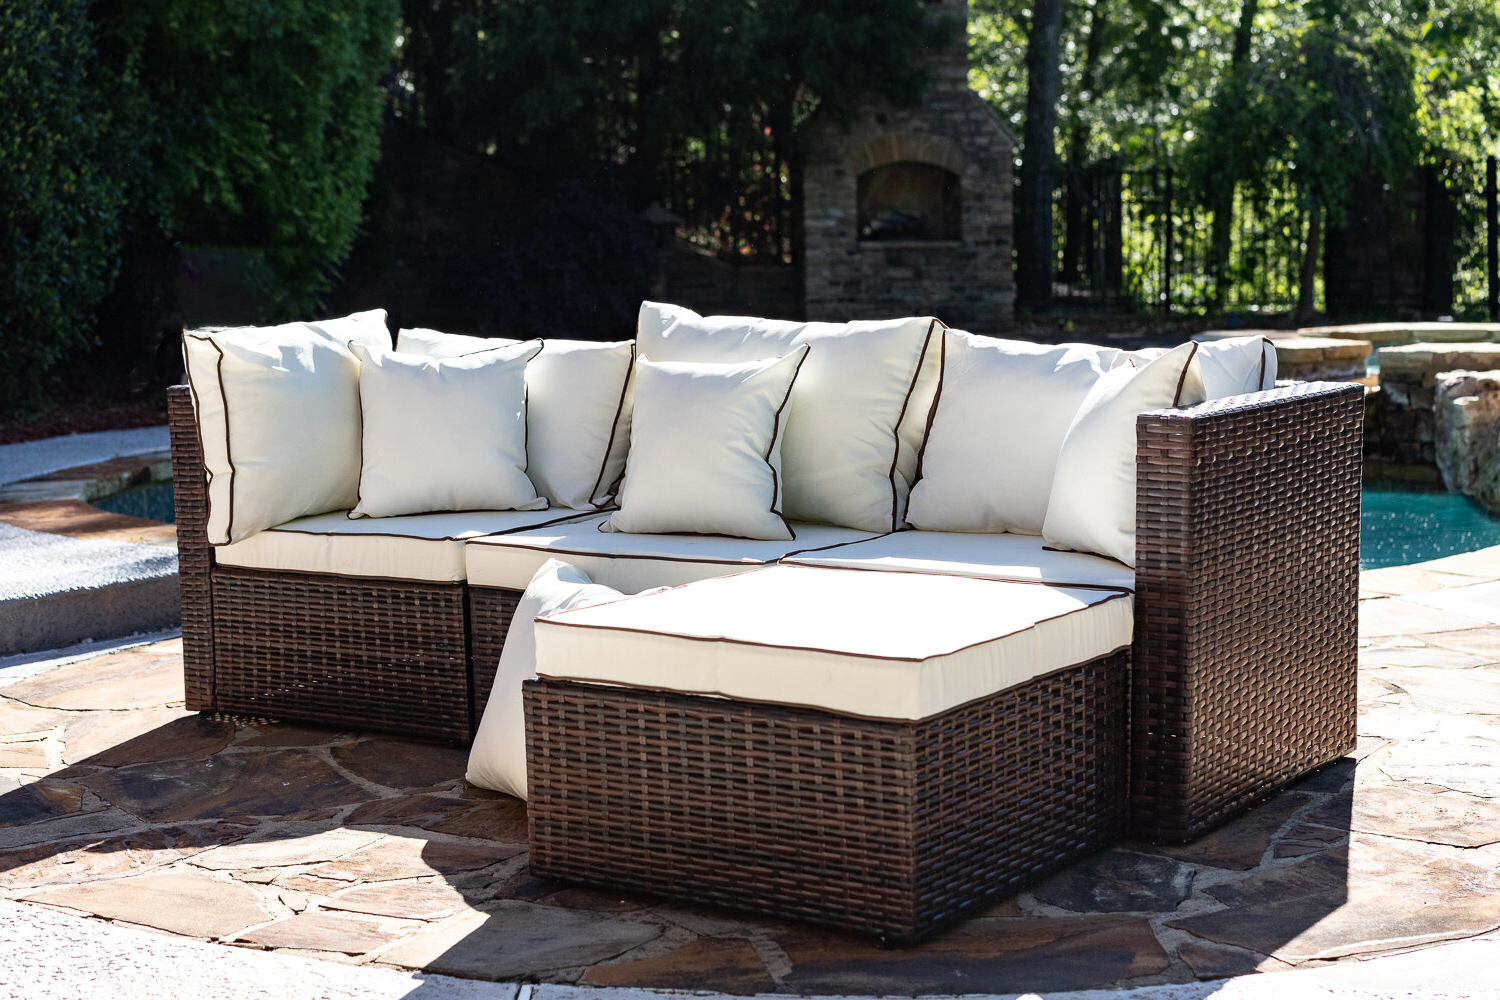 Burruss Patio Sectional With Cushions With Regard To 2020 Brennon Cube Patio Daybeds With Cushions (Gallery 18 of 25)